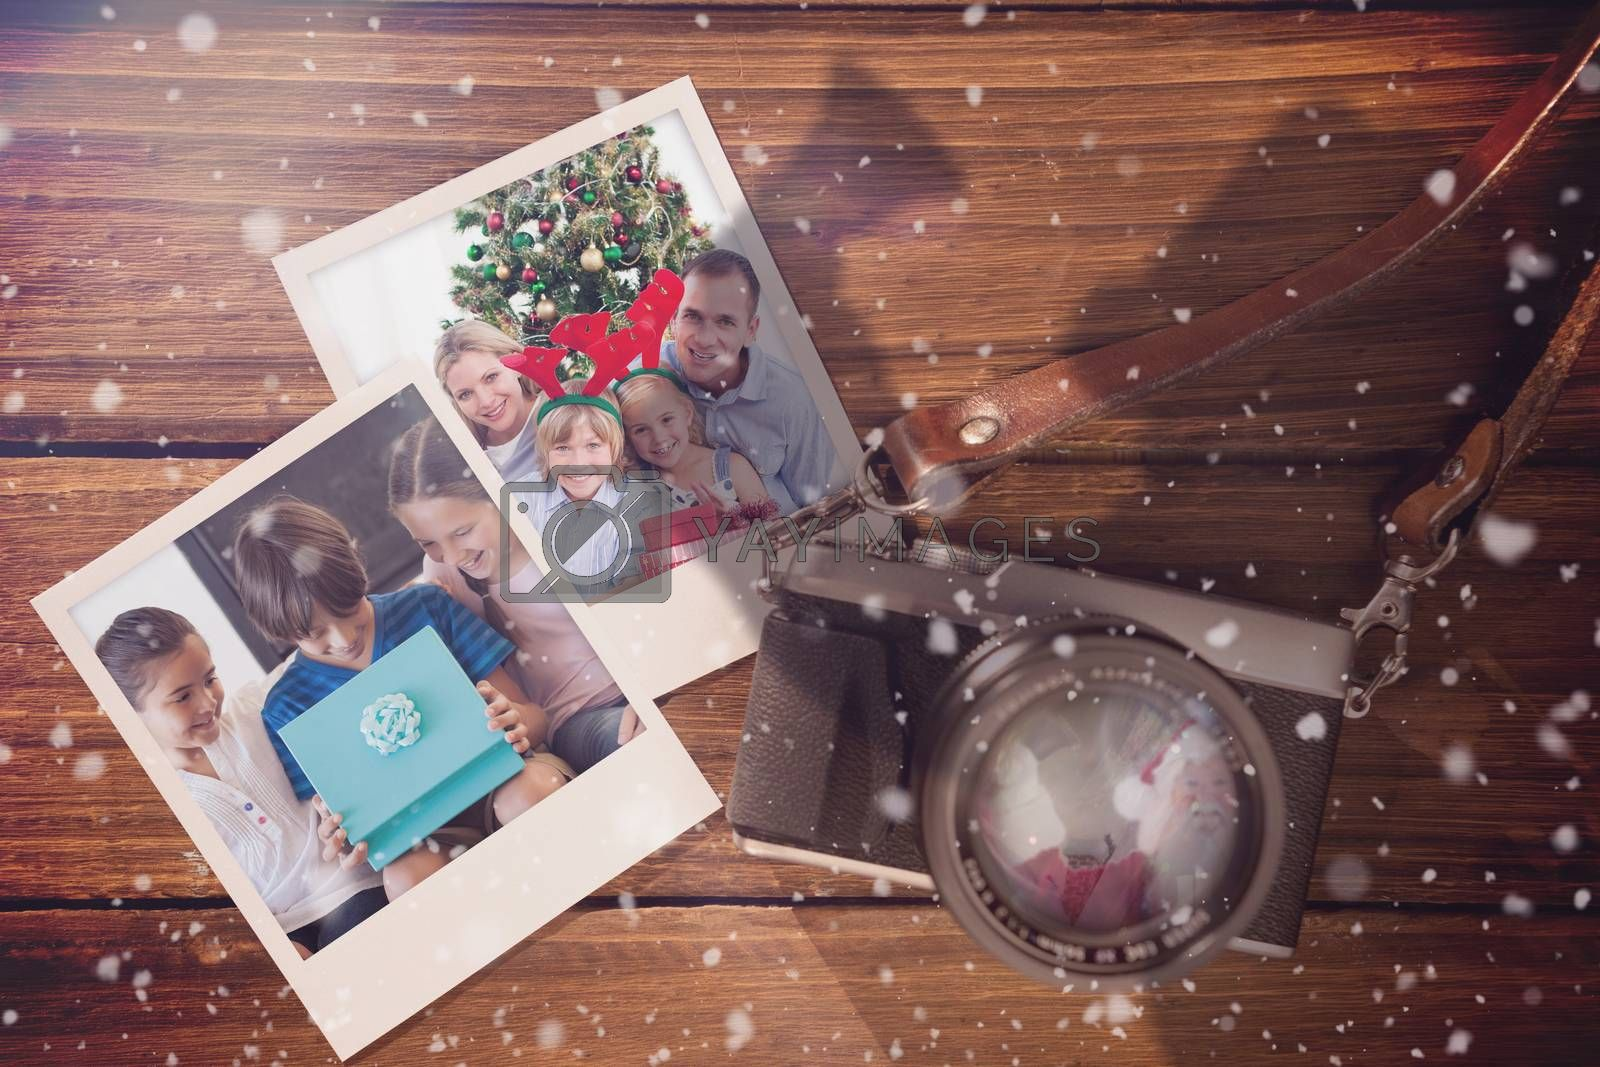 Composite image of christmas memories  against instant photos on wooden floor